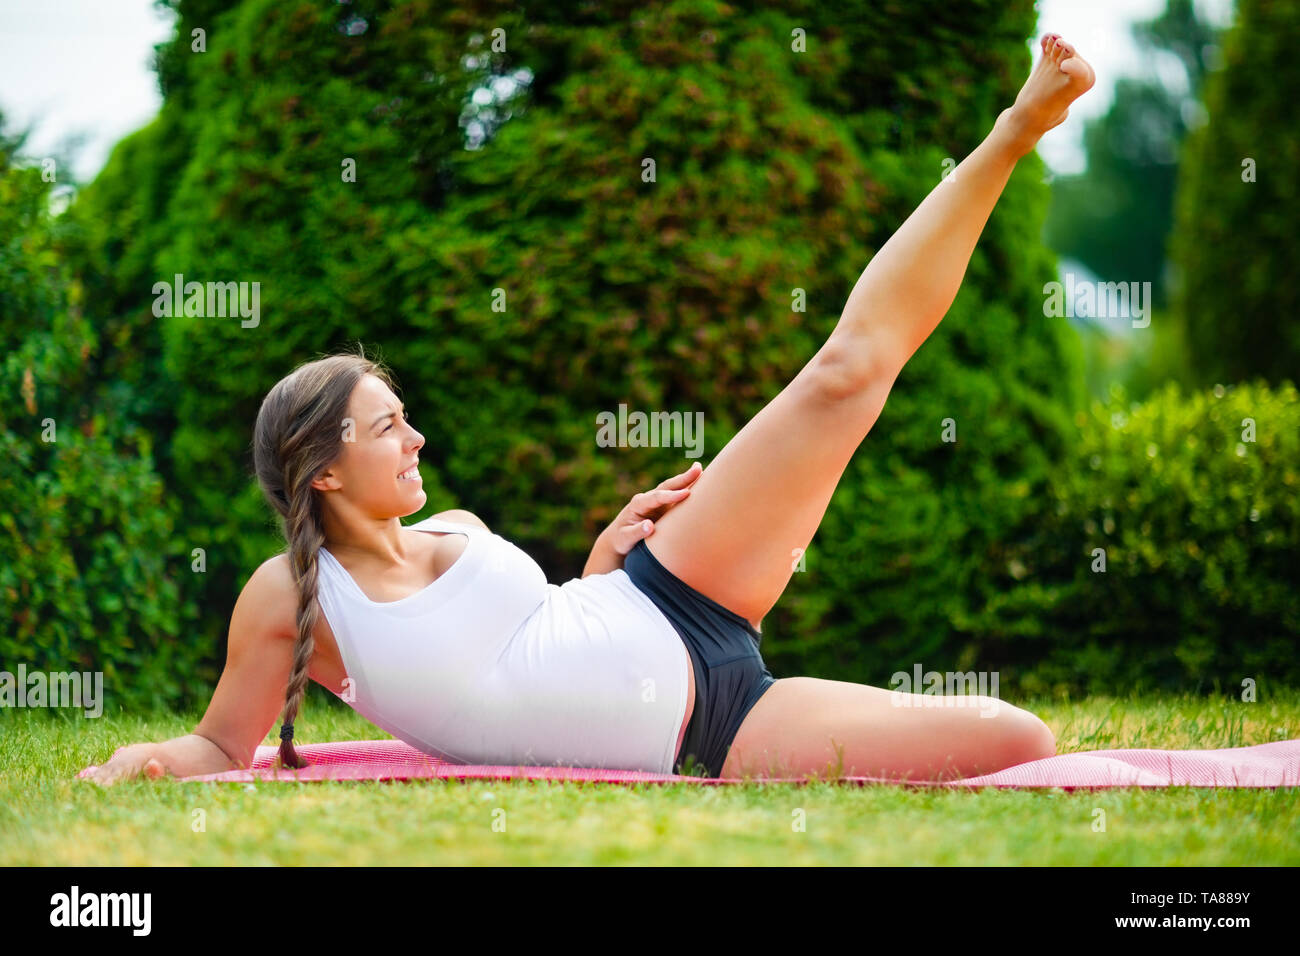 Expectant Woman Doing Side Reclining Leg Lift In Park - Stock Image